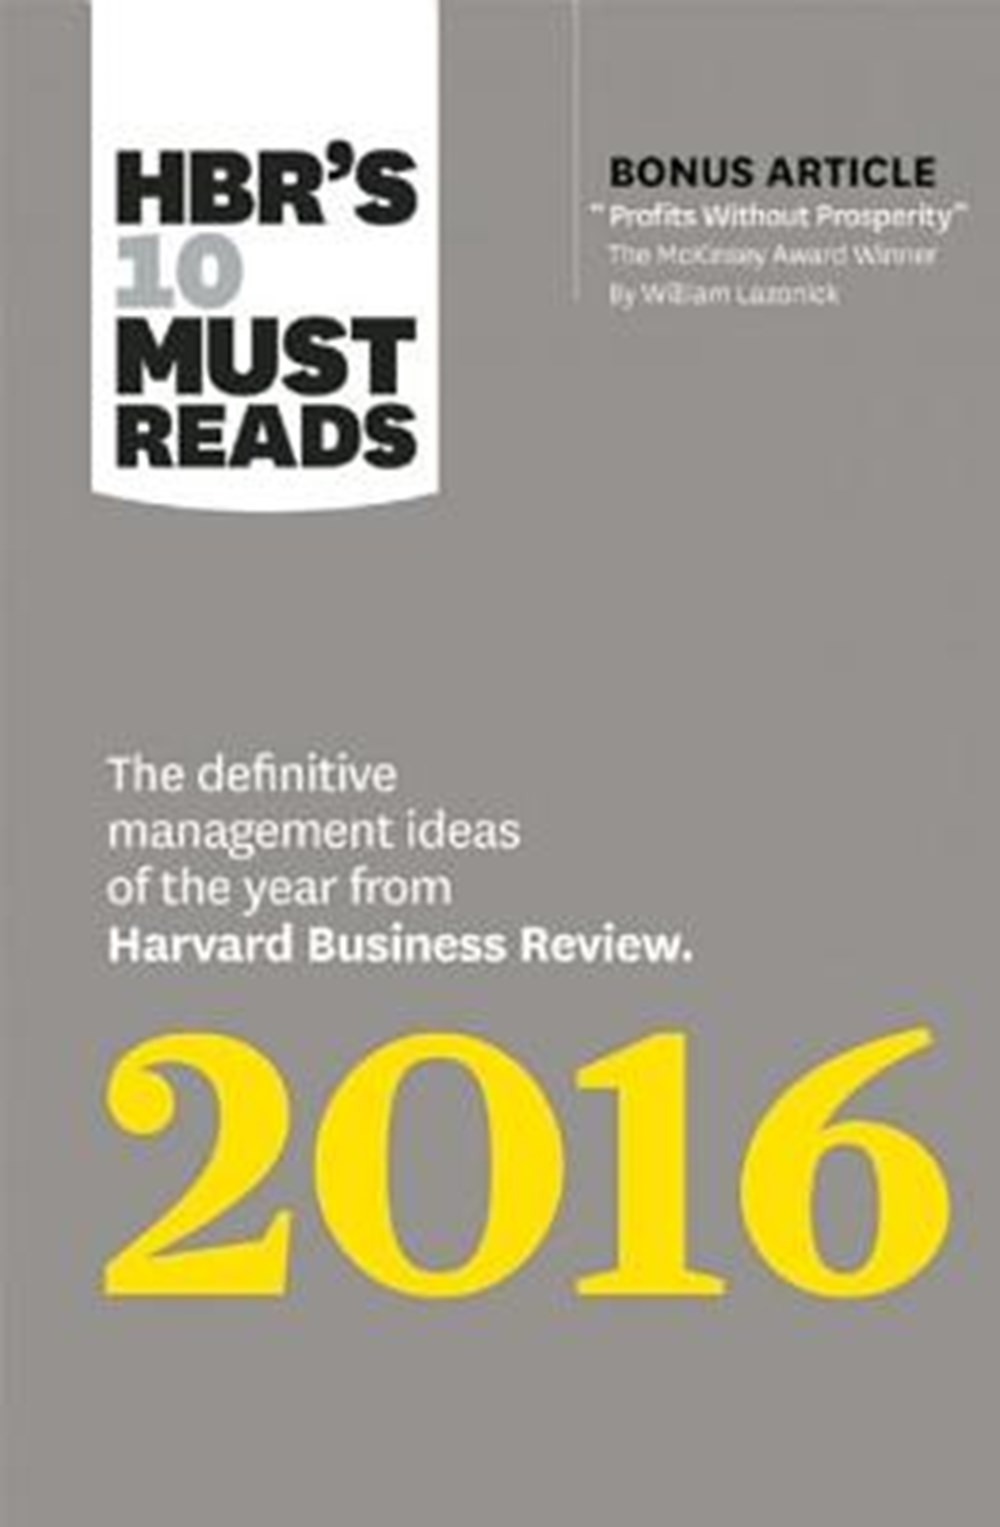 Hbr's 10 Must Reads 2016 The Definitive Management Ideas of the Year from Harvard Business Review (w